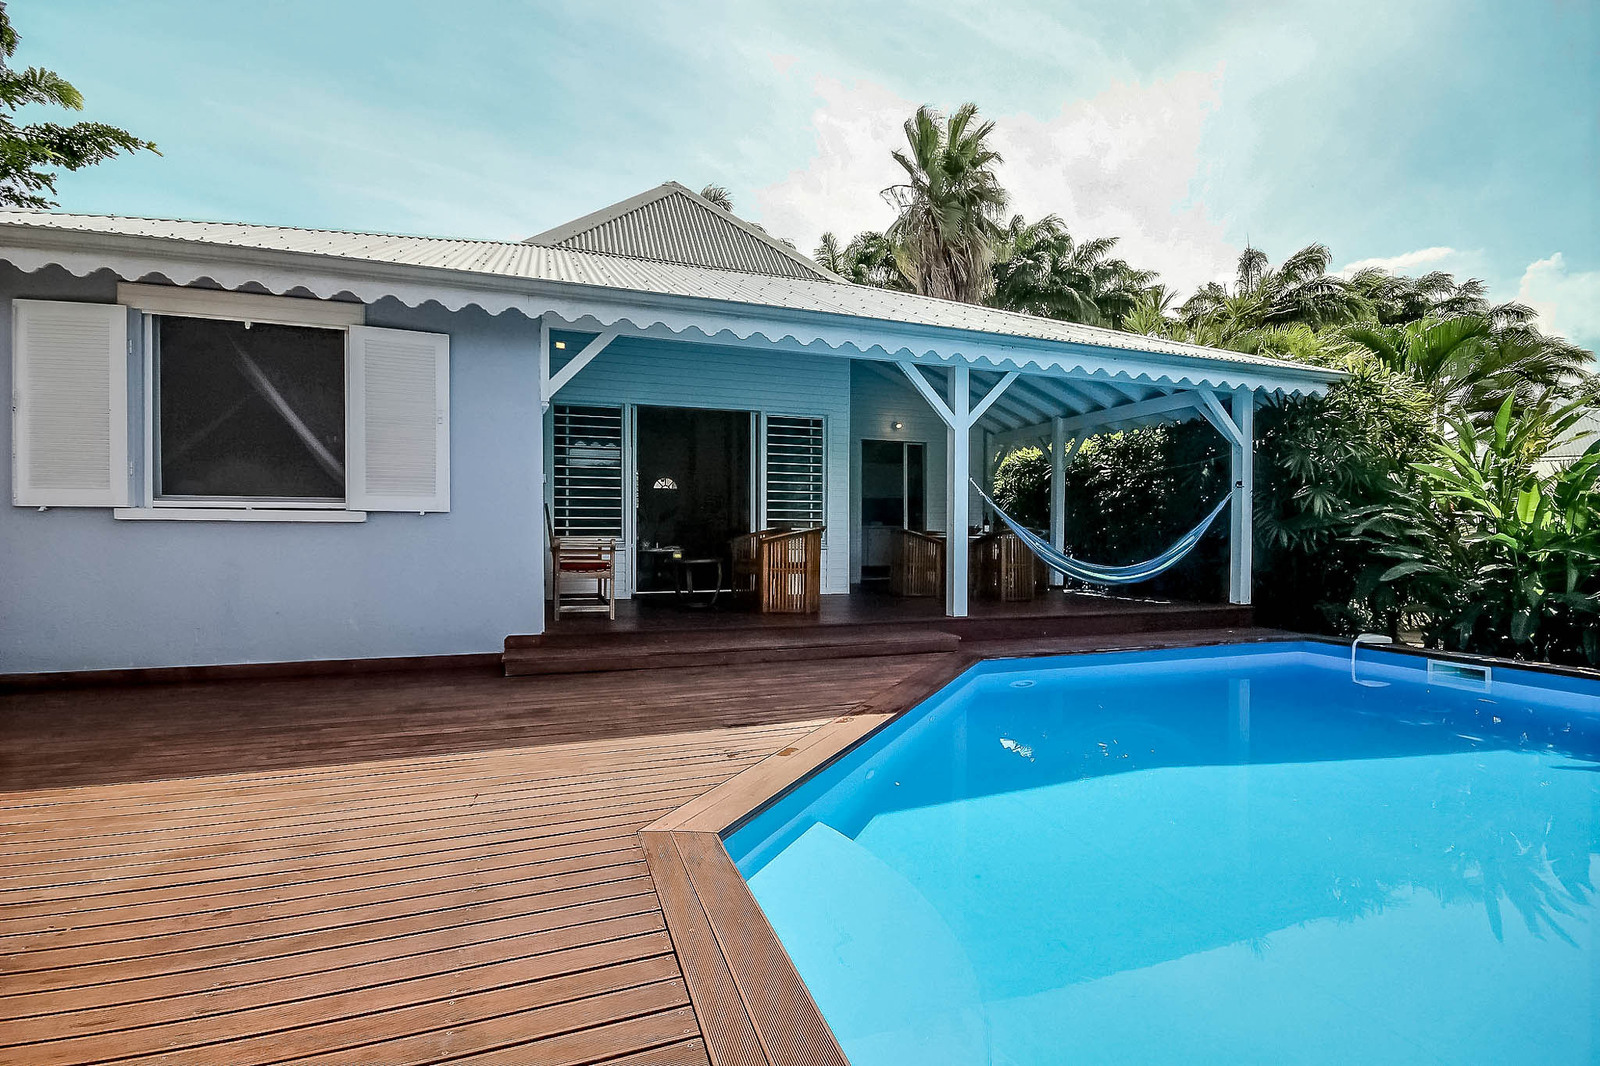 Location guadeloupe locations vacances guadeloupe villaveo for Location villa de vacances